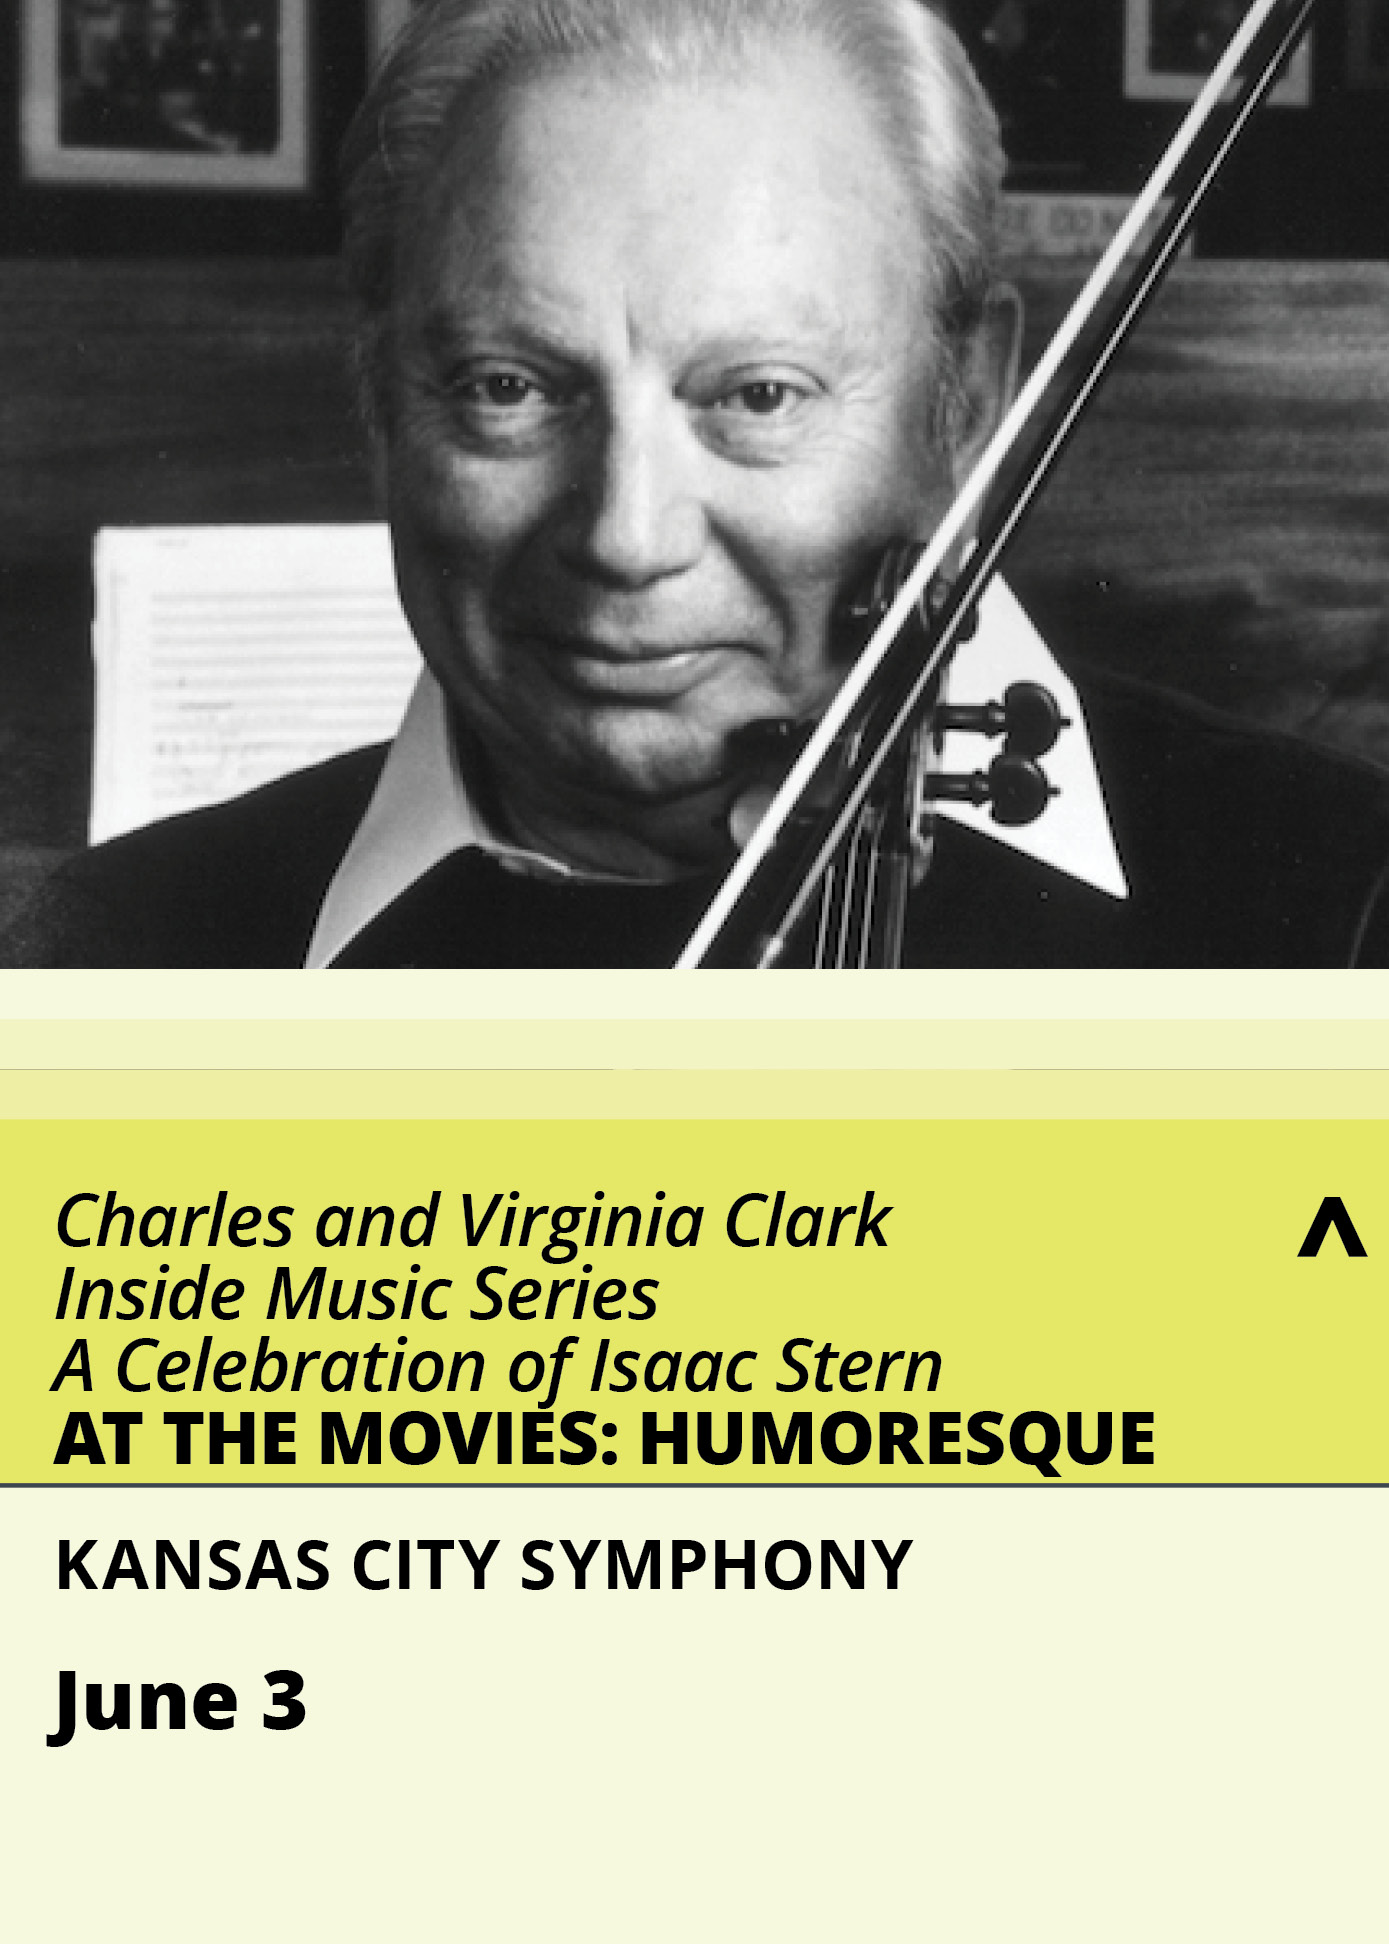 Events | Kansas City Symphony